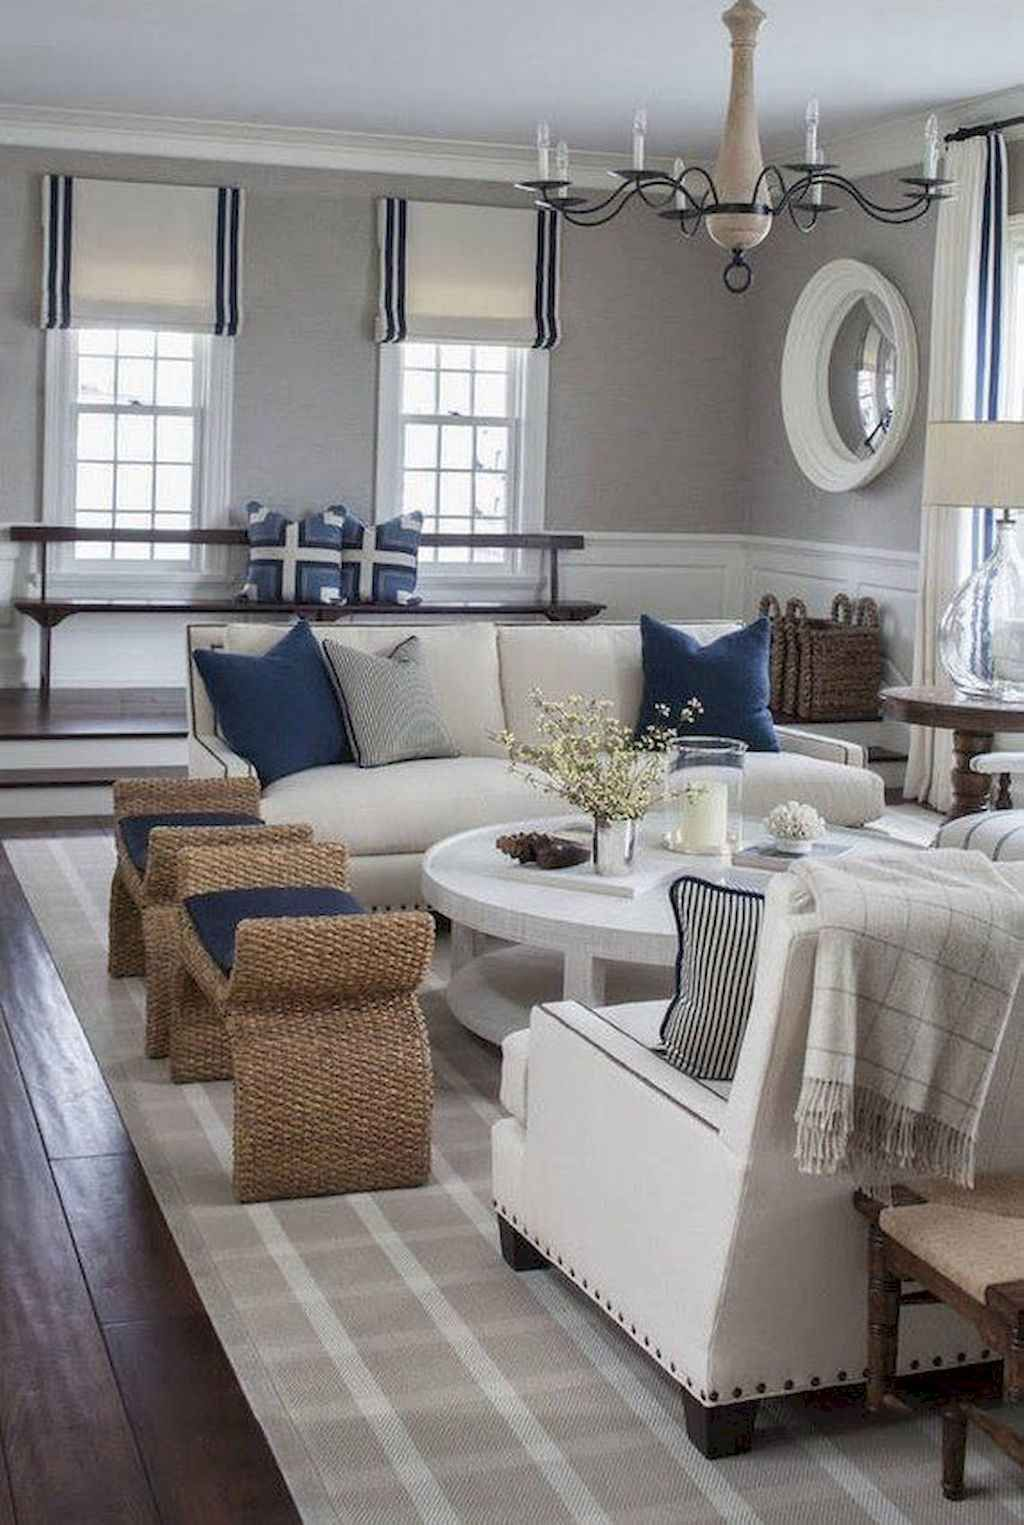 26 Incredible Coastal Living Room Decor Ideas In 2020 Coastal Decorating Living Room Country Living Room Coastal Living Rooms